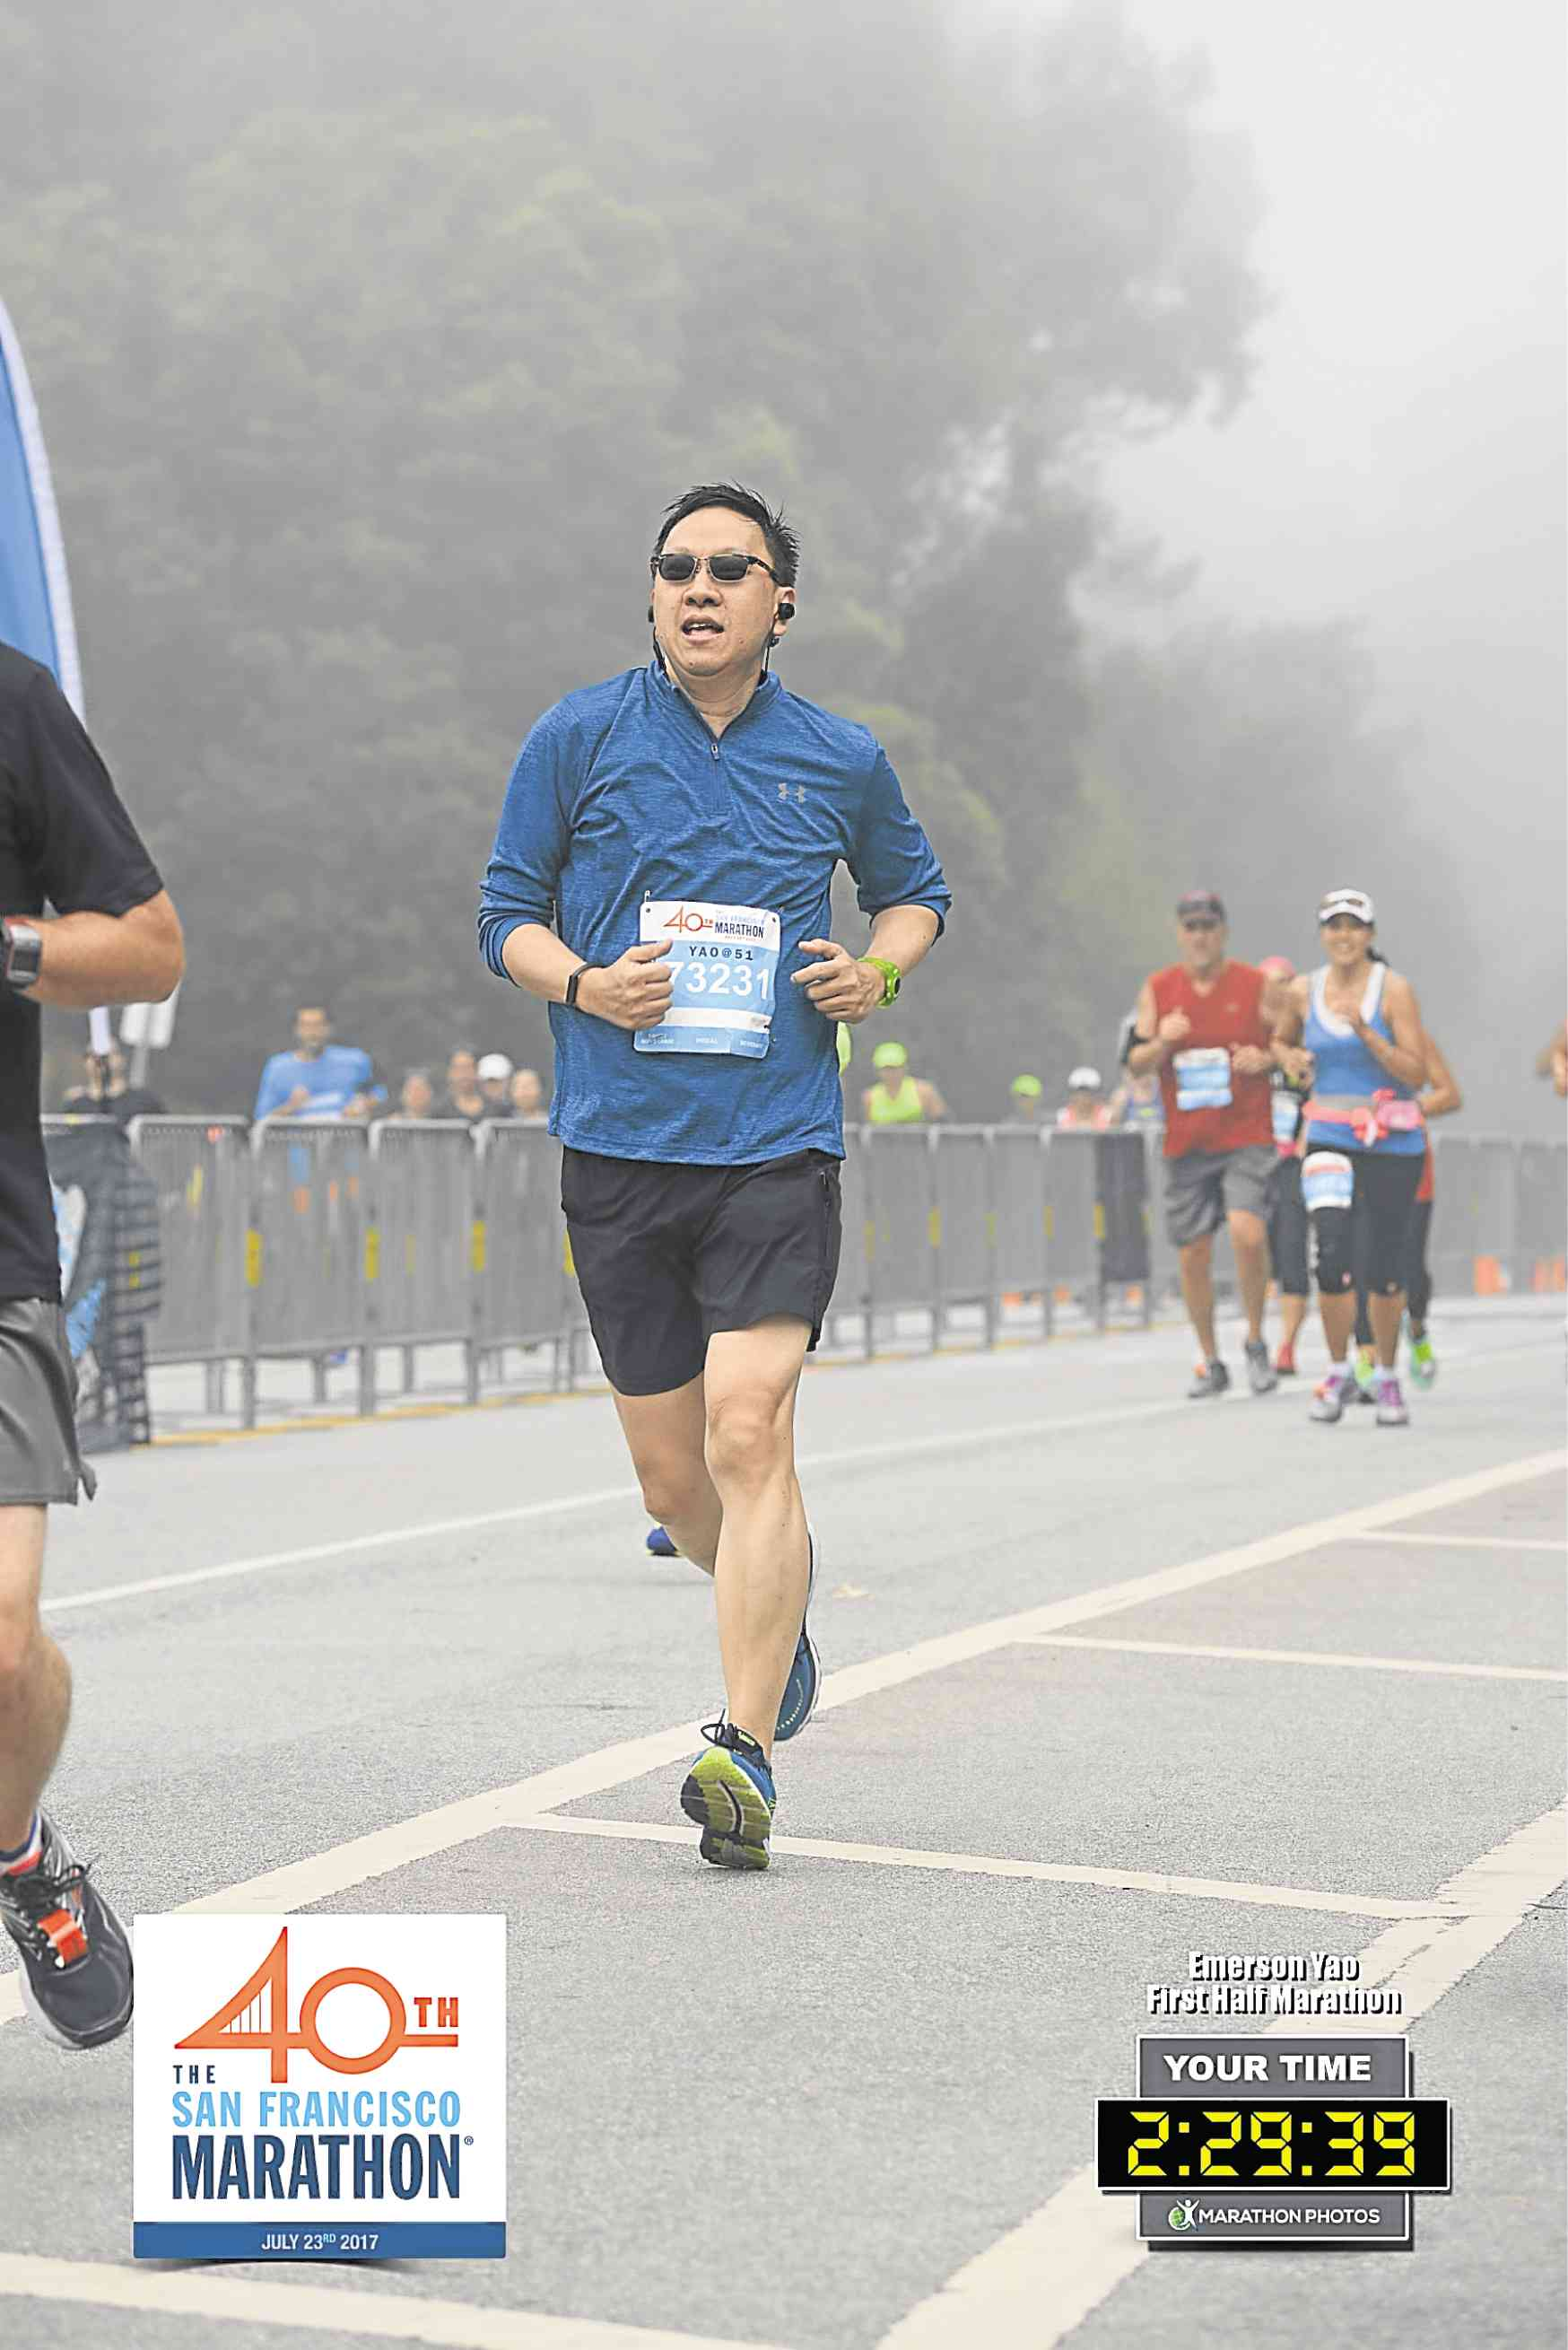 How Emerson Yao became a marathon runner after 50 | Inquirer Lifestyle